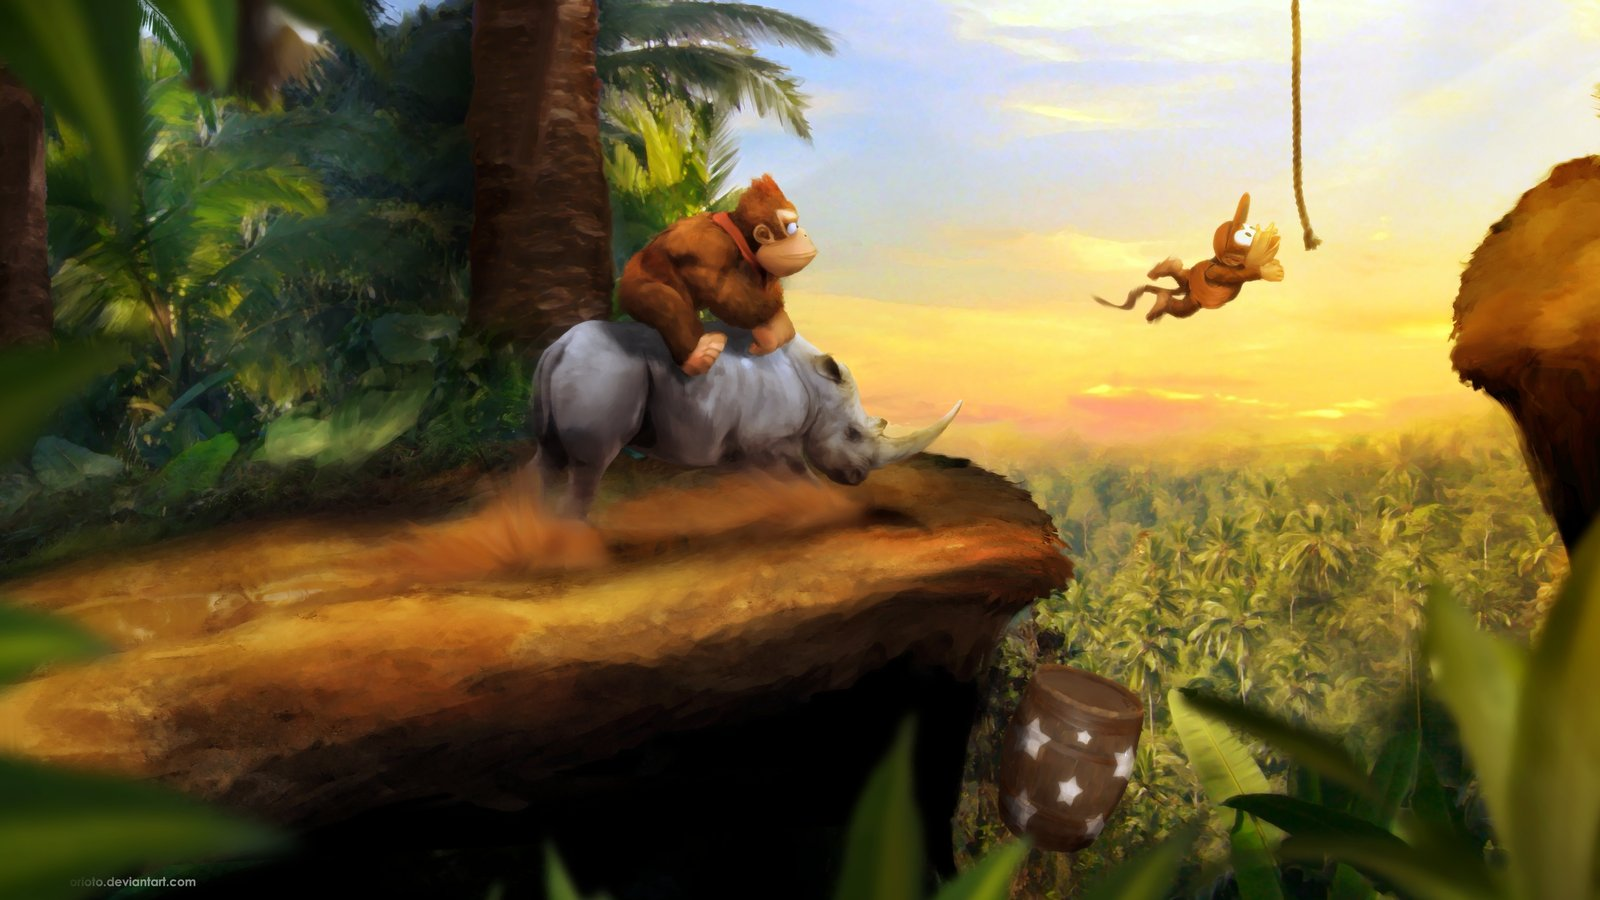 The majesty of this painting (yes, painting, digitally touched up afterwards) is breathtaking.  That DKC could inspire this sort of artistry speaks for its awesomeness.